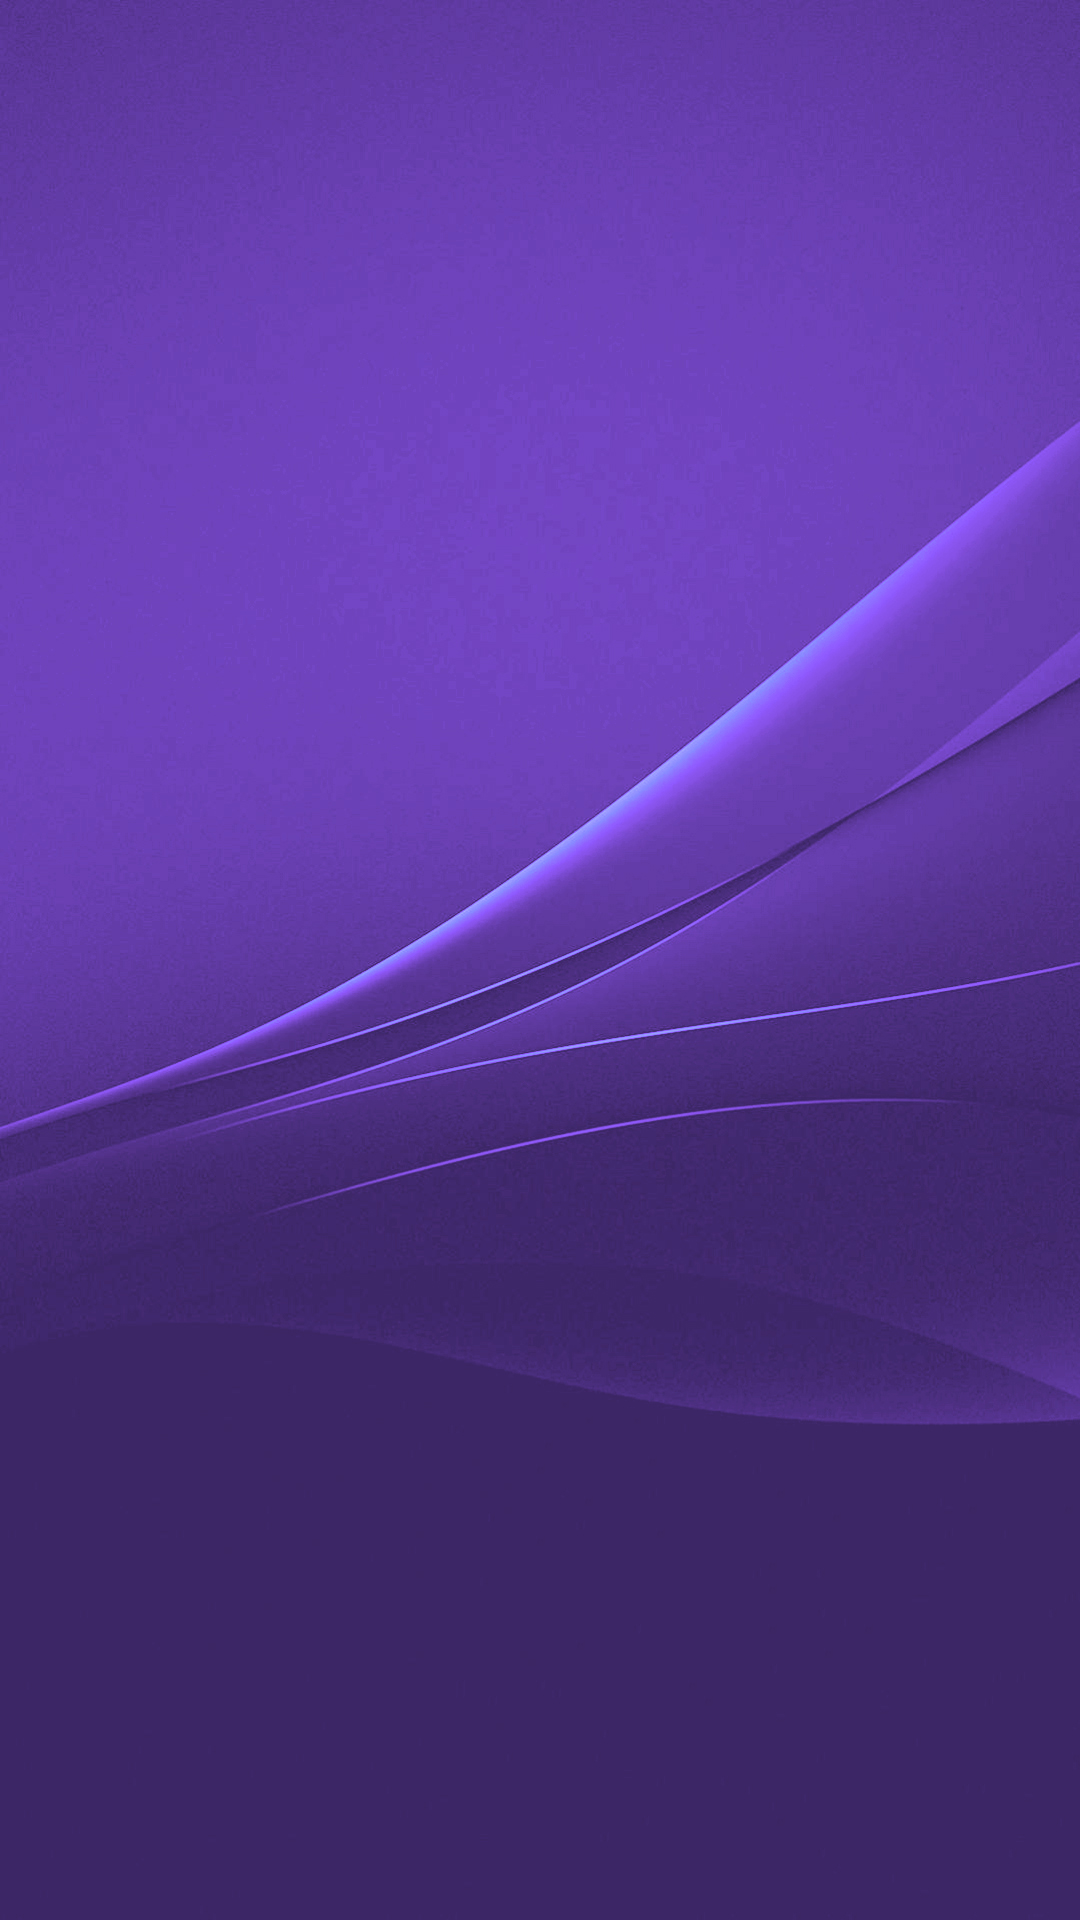 Purple xperia lollipop experience flow wallpaper gizmo for Wallpaper xperia home